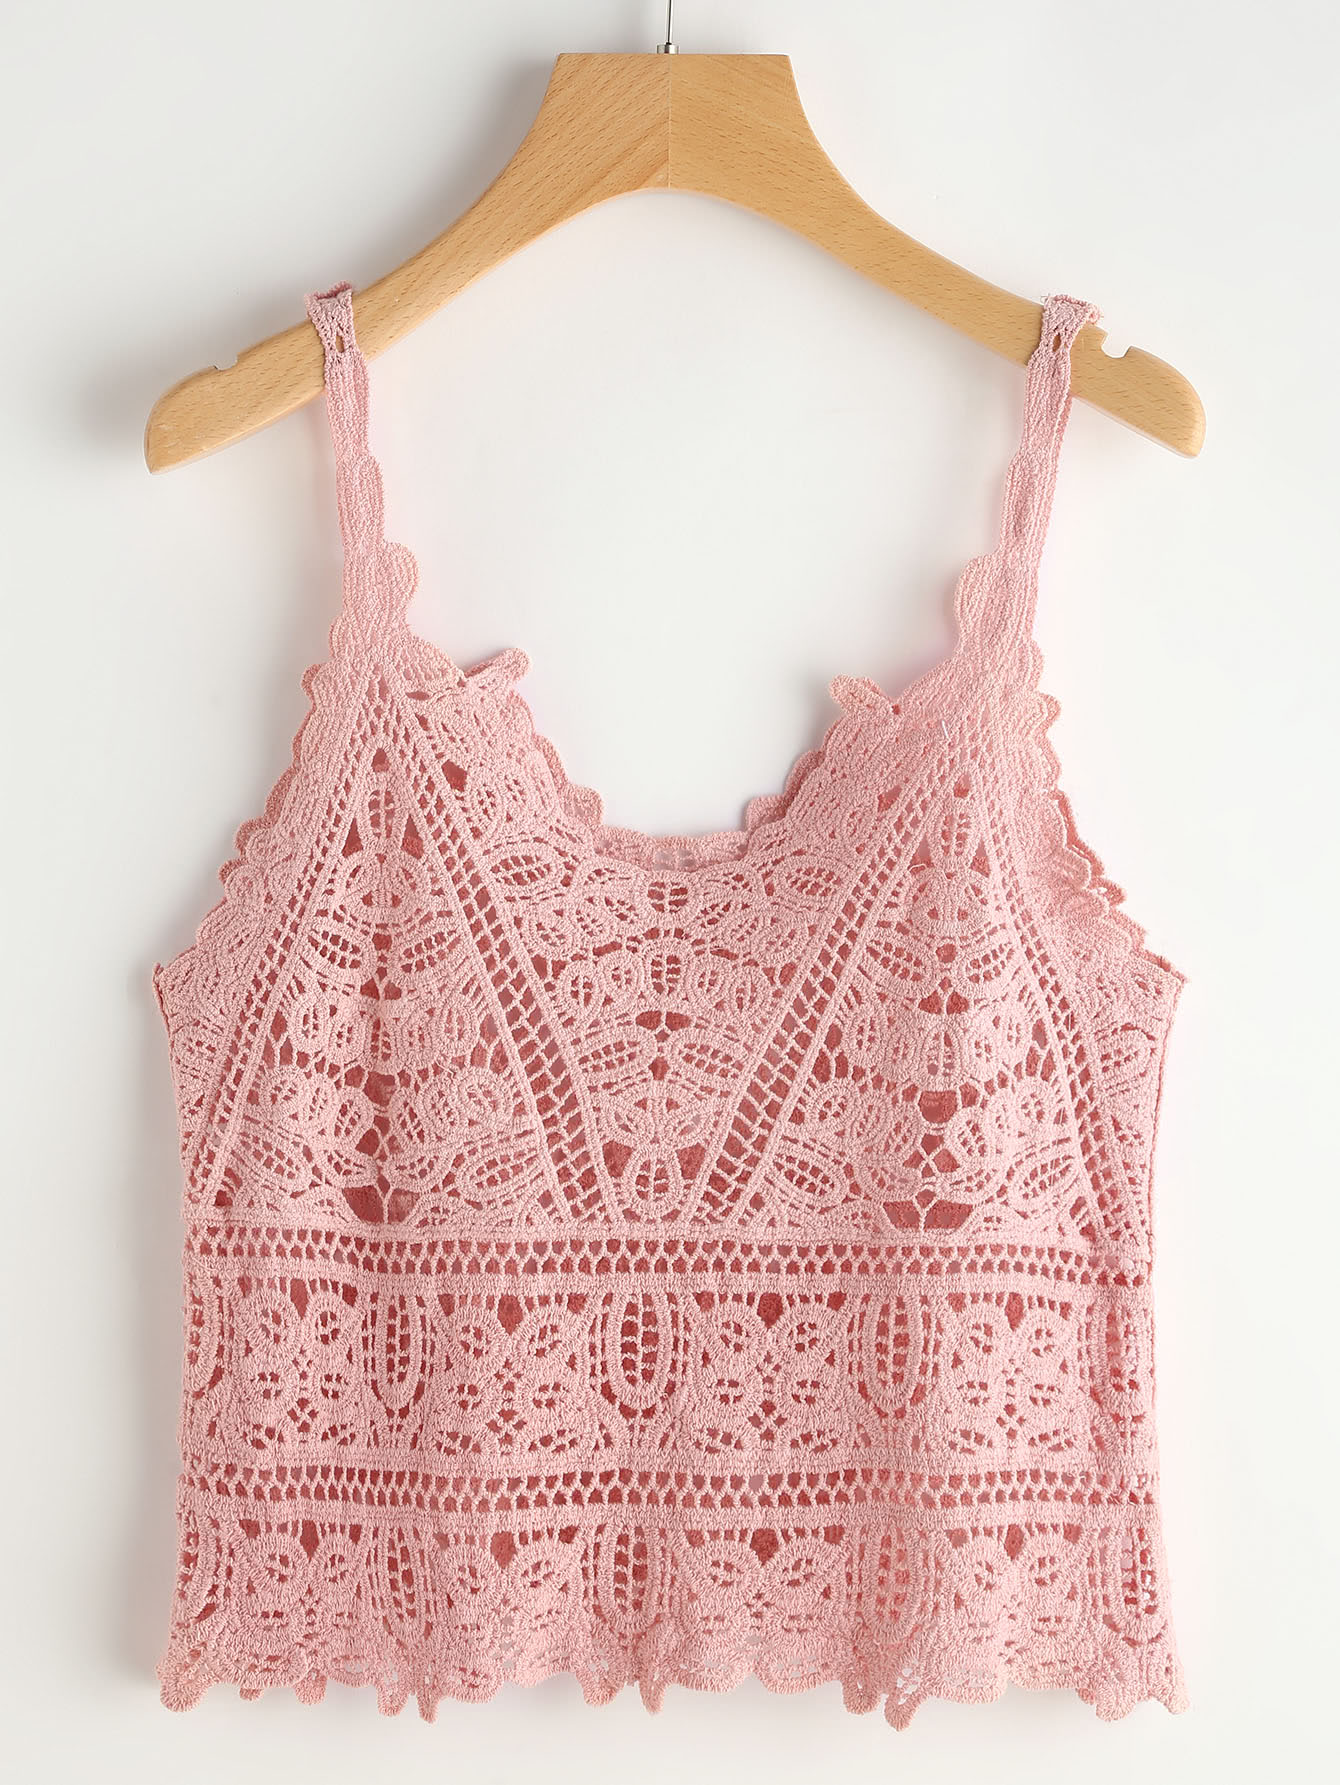 Knitting Pattern For Lace Top : Crochet Lace Cami Top - Knitting, Crochet, Diy, Craft, Free Patterns - Knitti...